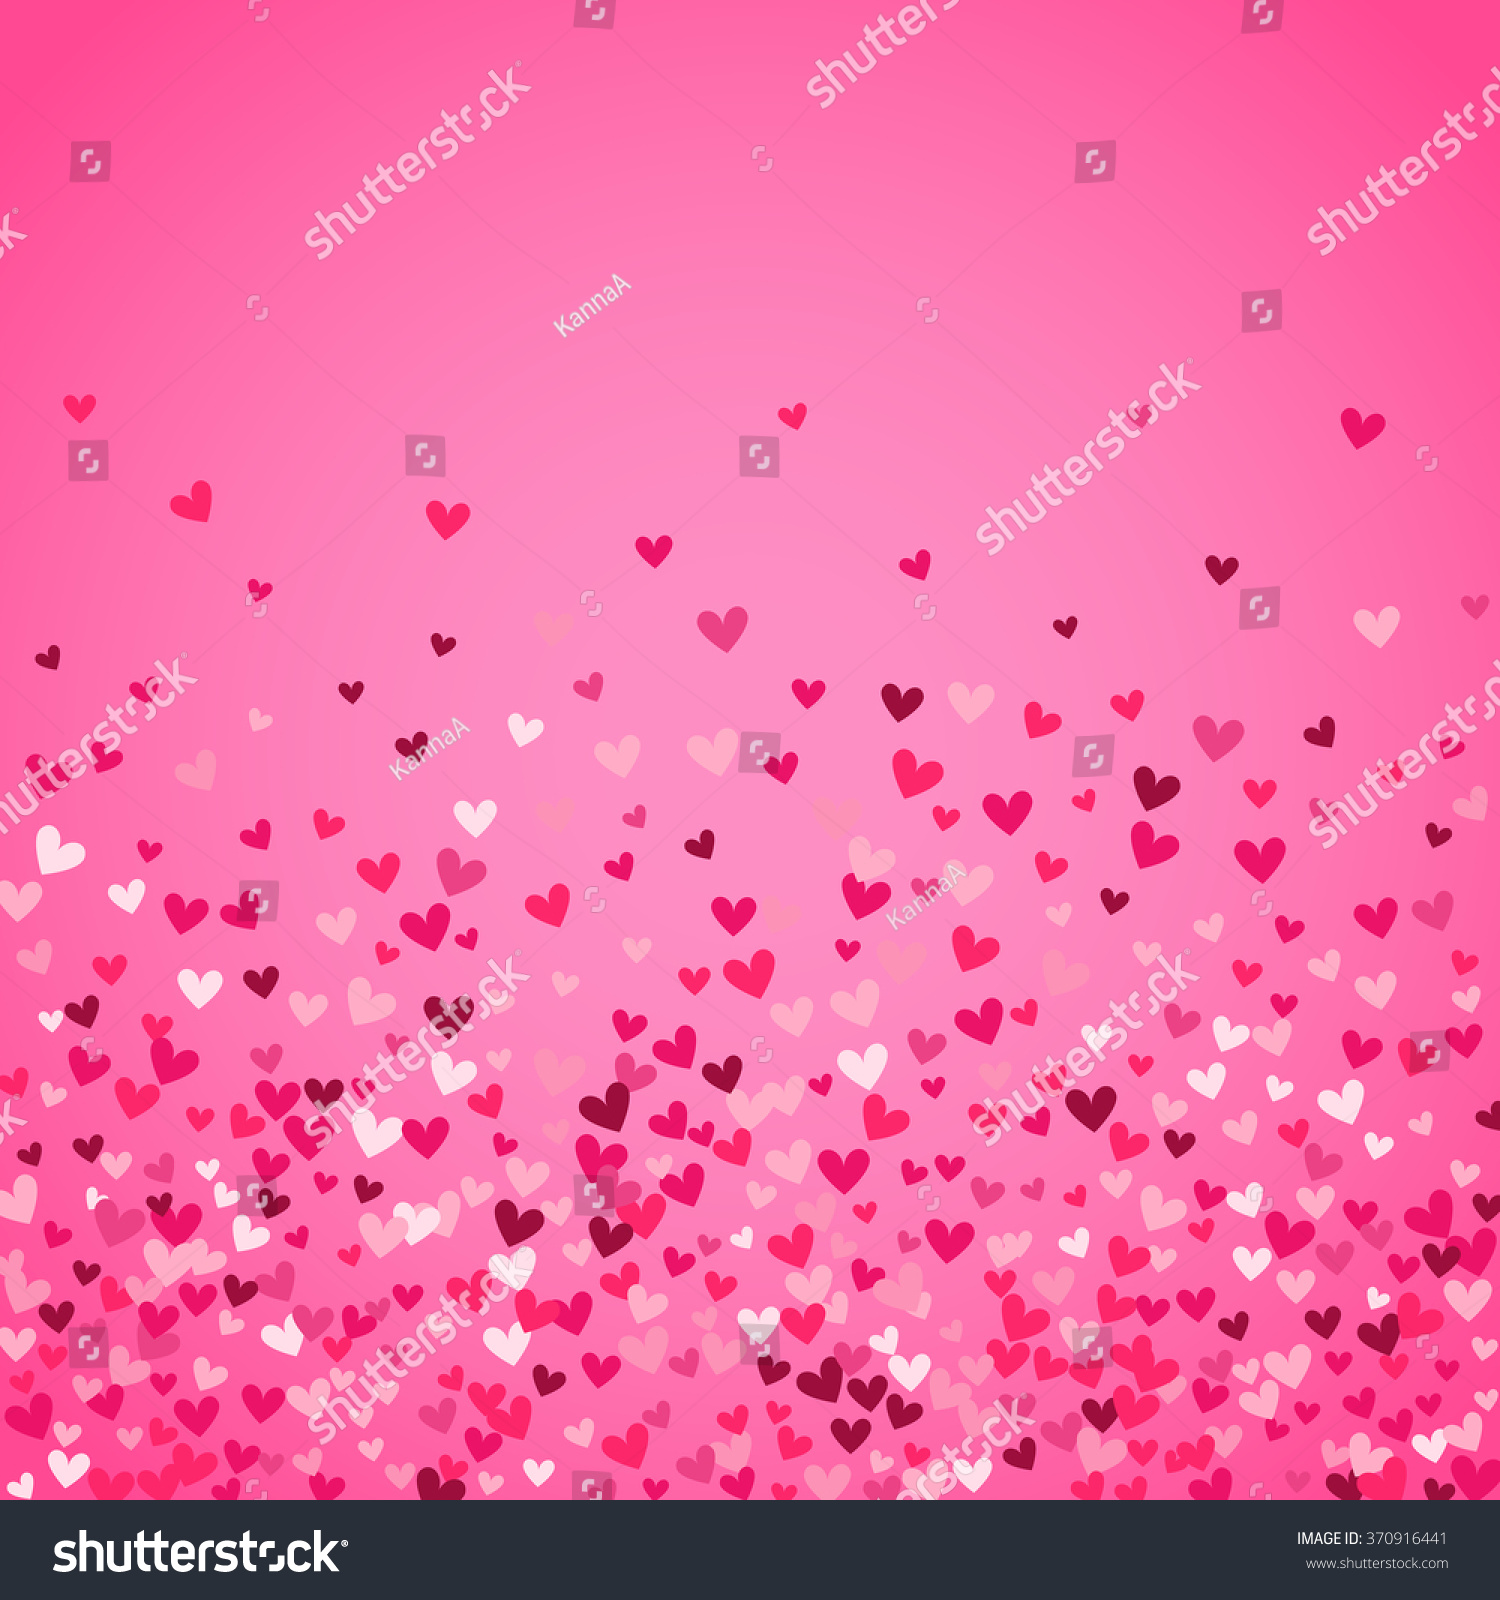 holiday hearts wallpaper vector - photo #7